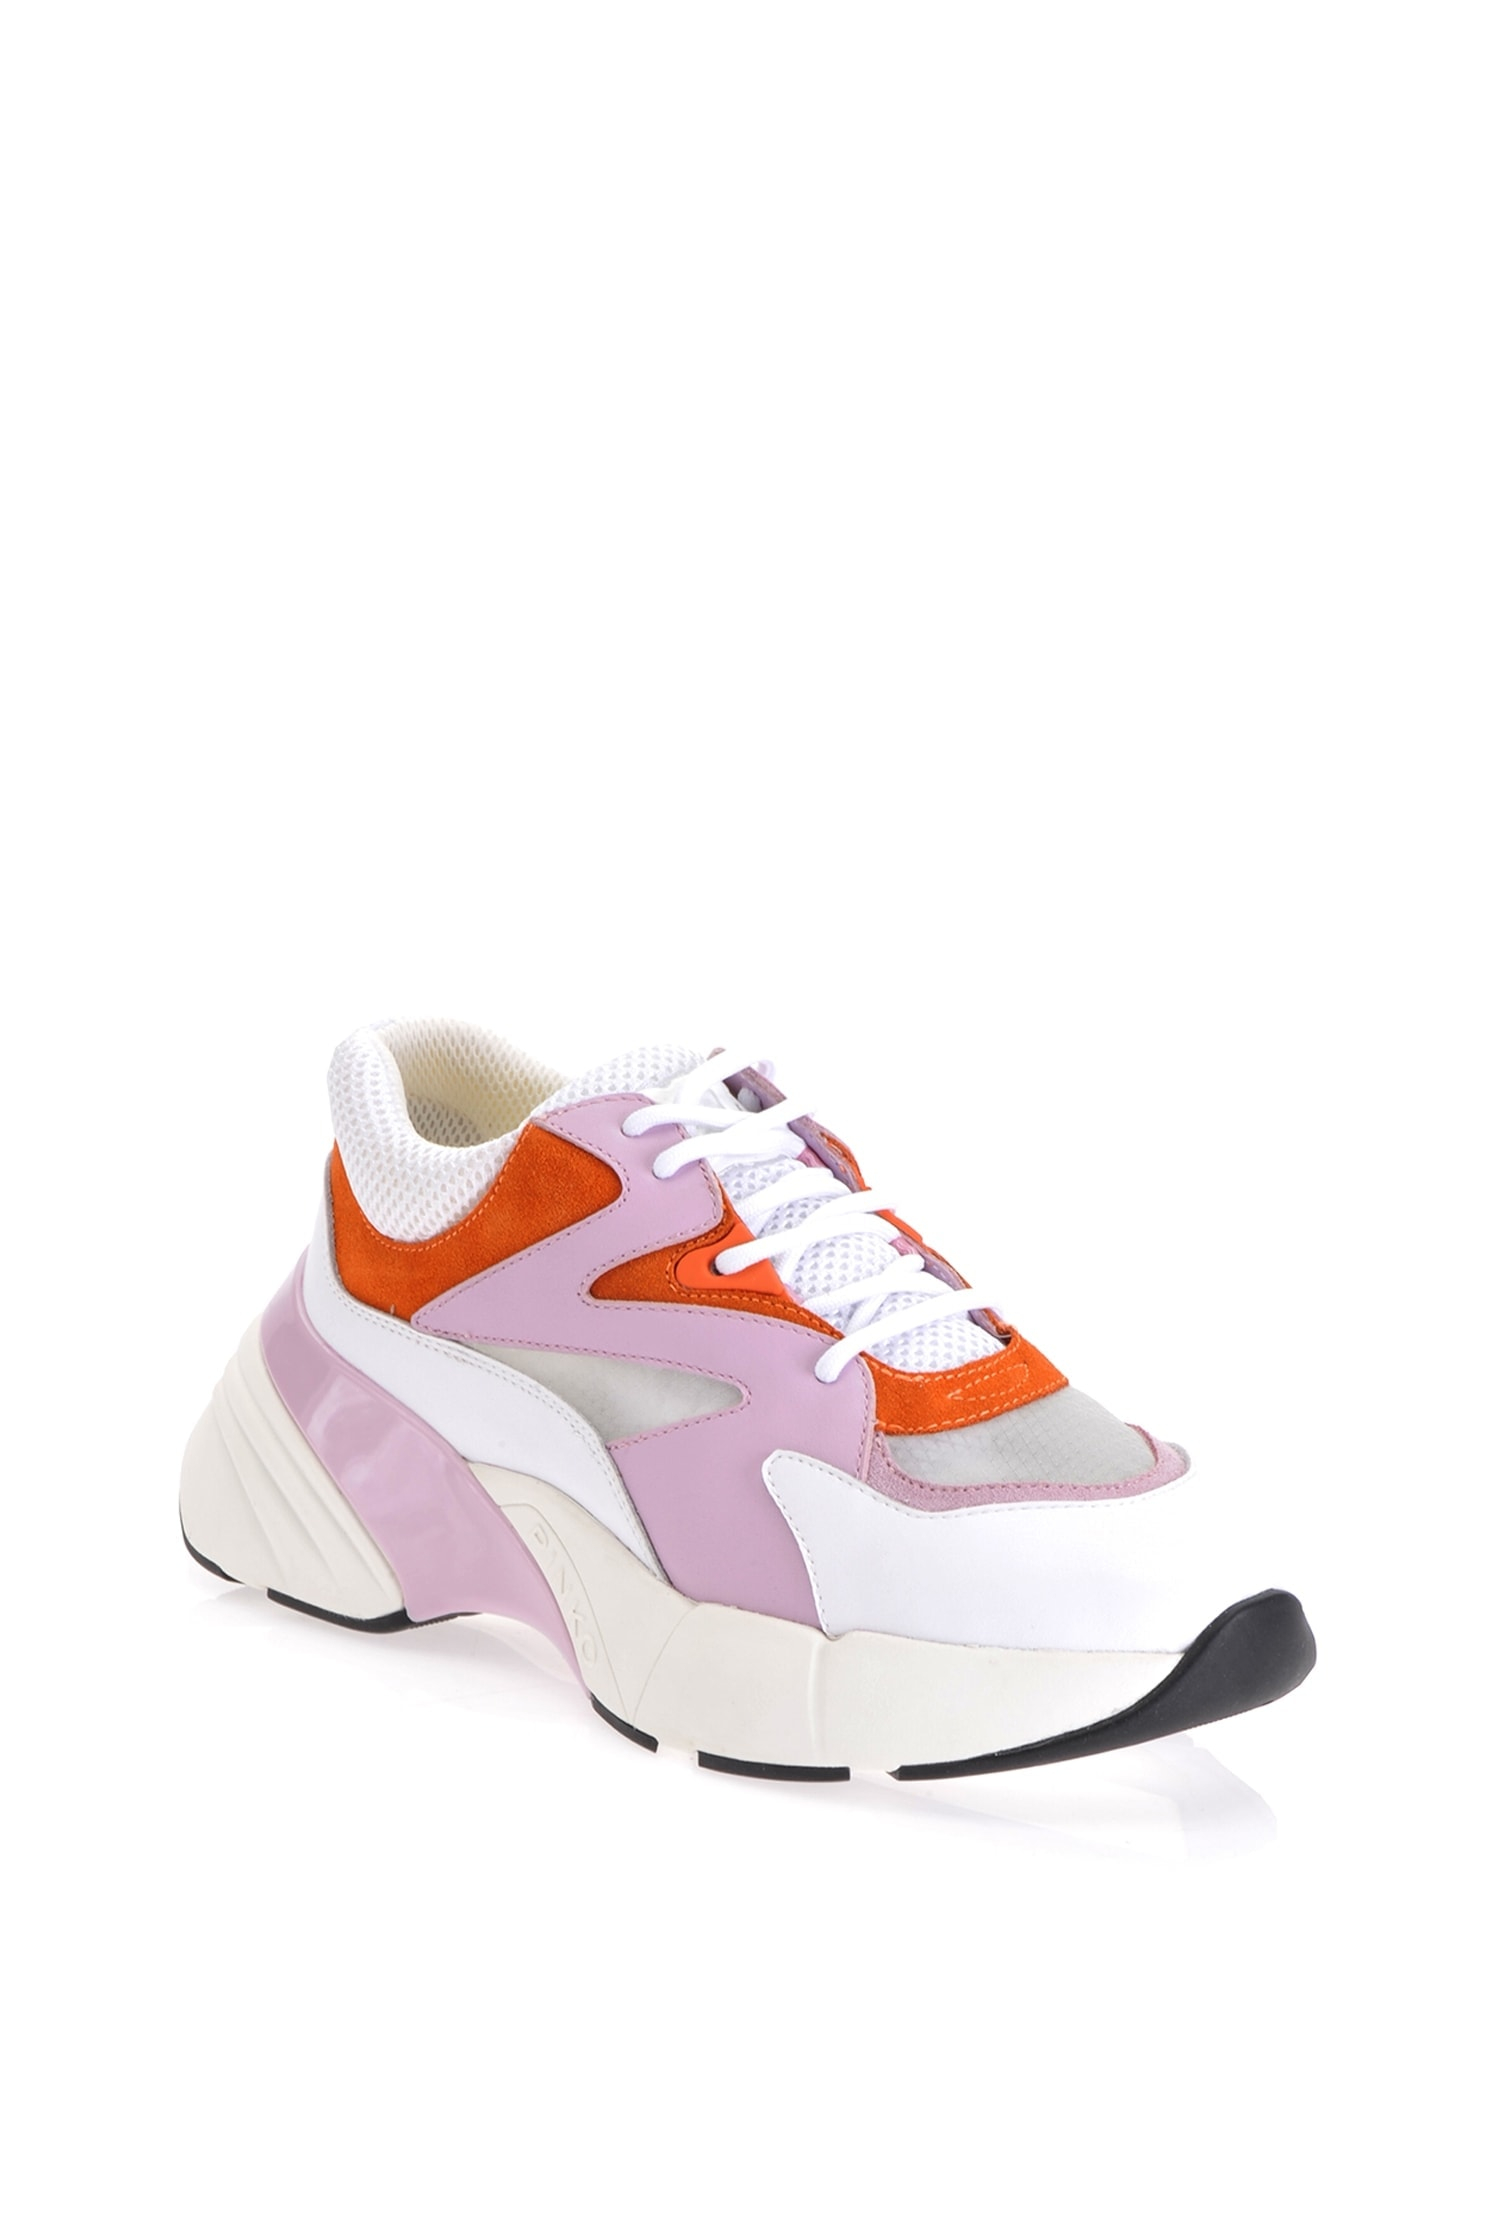 SHOPPING ON LINE PINKO SNEAKERS OVERSIZE SNEAKERS IN PELLE MAGGIORANA 2  NEW COLLECTION WOMEN'S SPRING SUMMER 2020